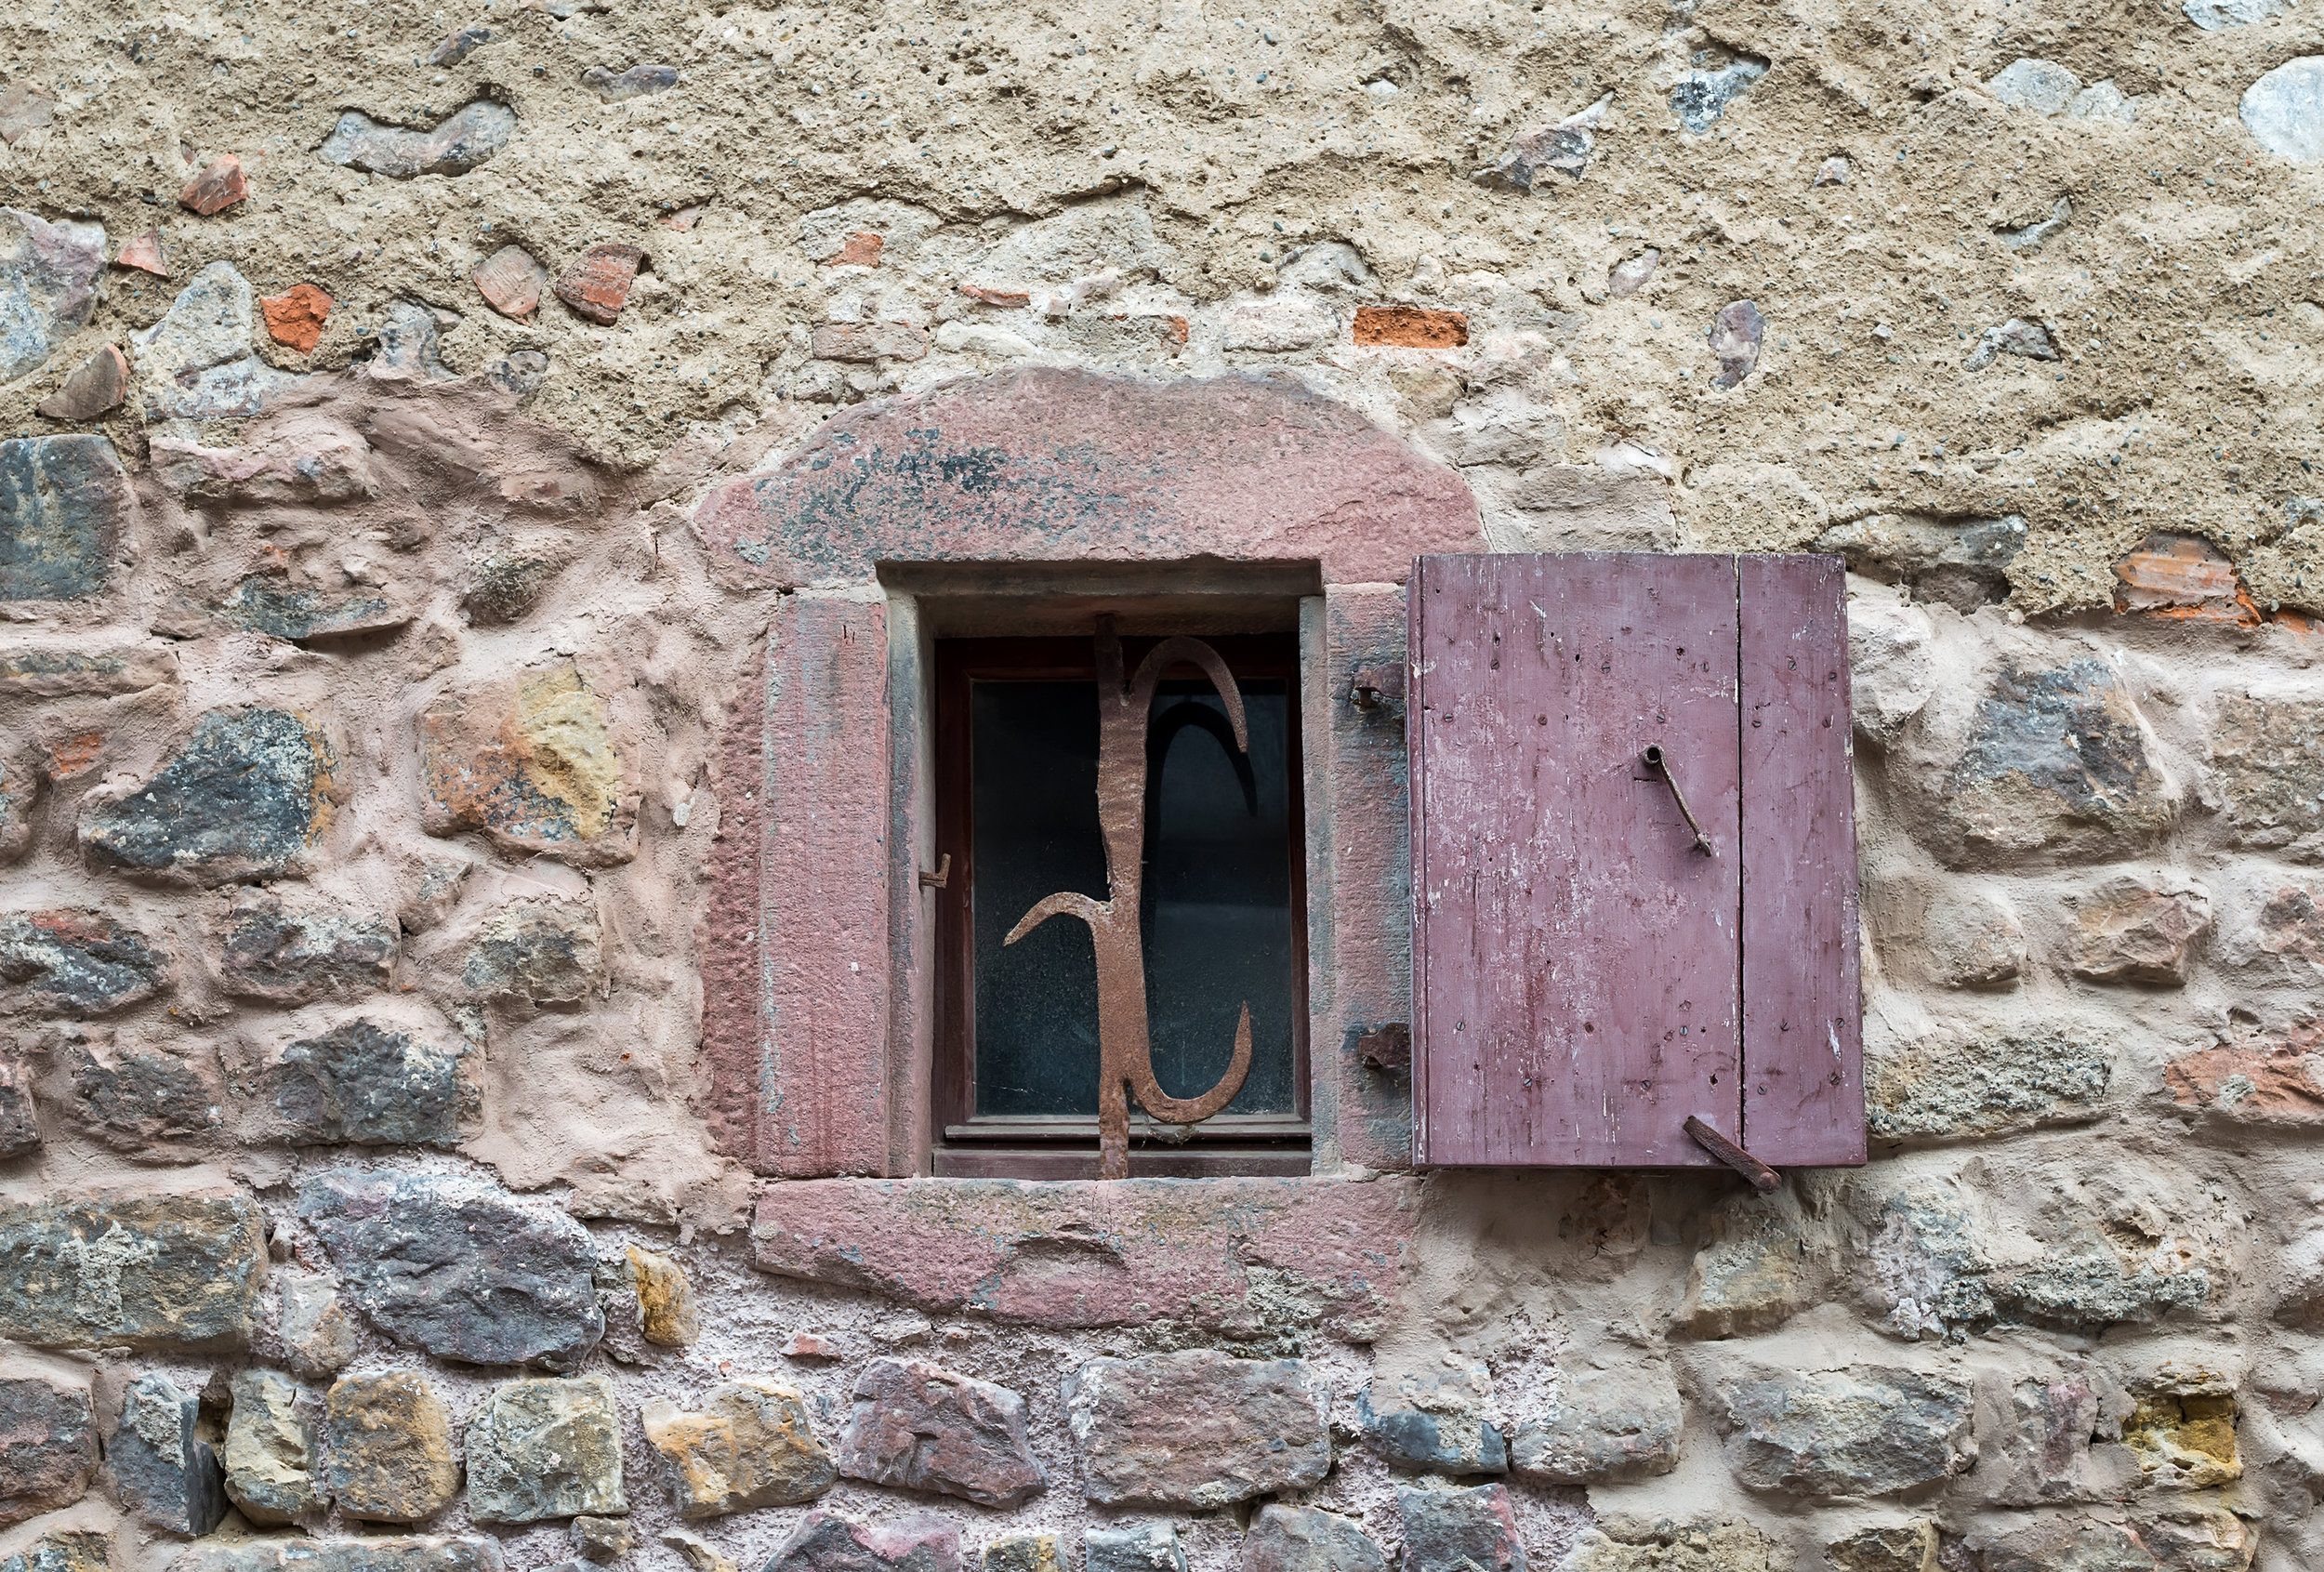 french-window-with-closed-old-medieval-wooden-PYQTQX3.jpg